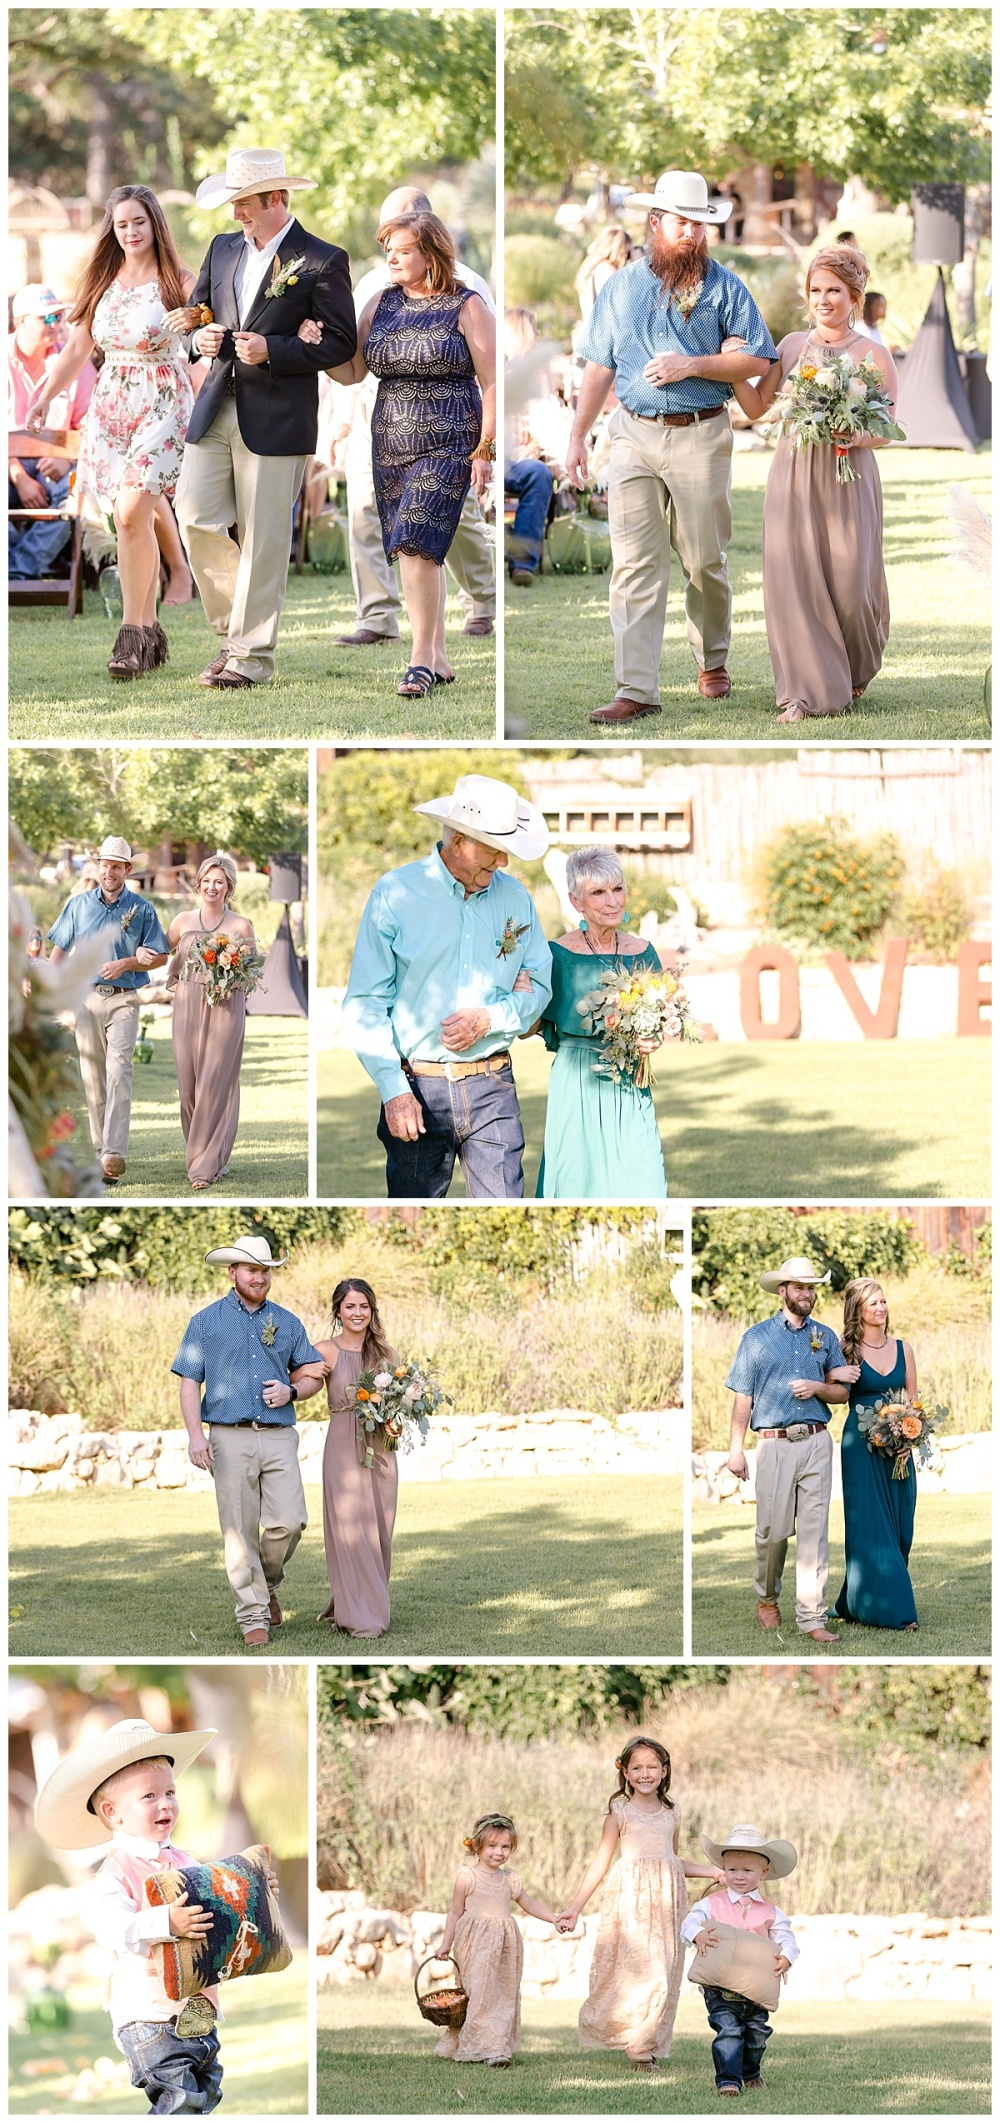 Texas-Wedding-Photographer-Braded-T-Ranch-Kendalia-Bride-Groom-Southwestern-Style-Carly-Barton-Photography-Vogt_0028.jpg